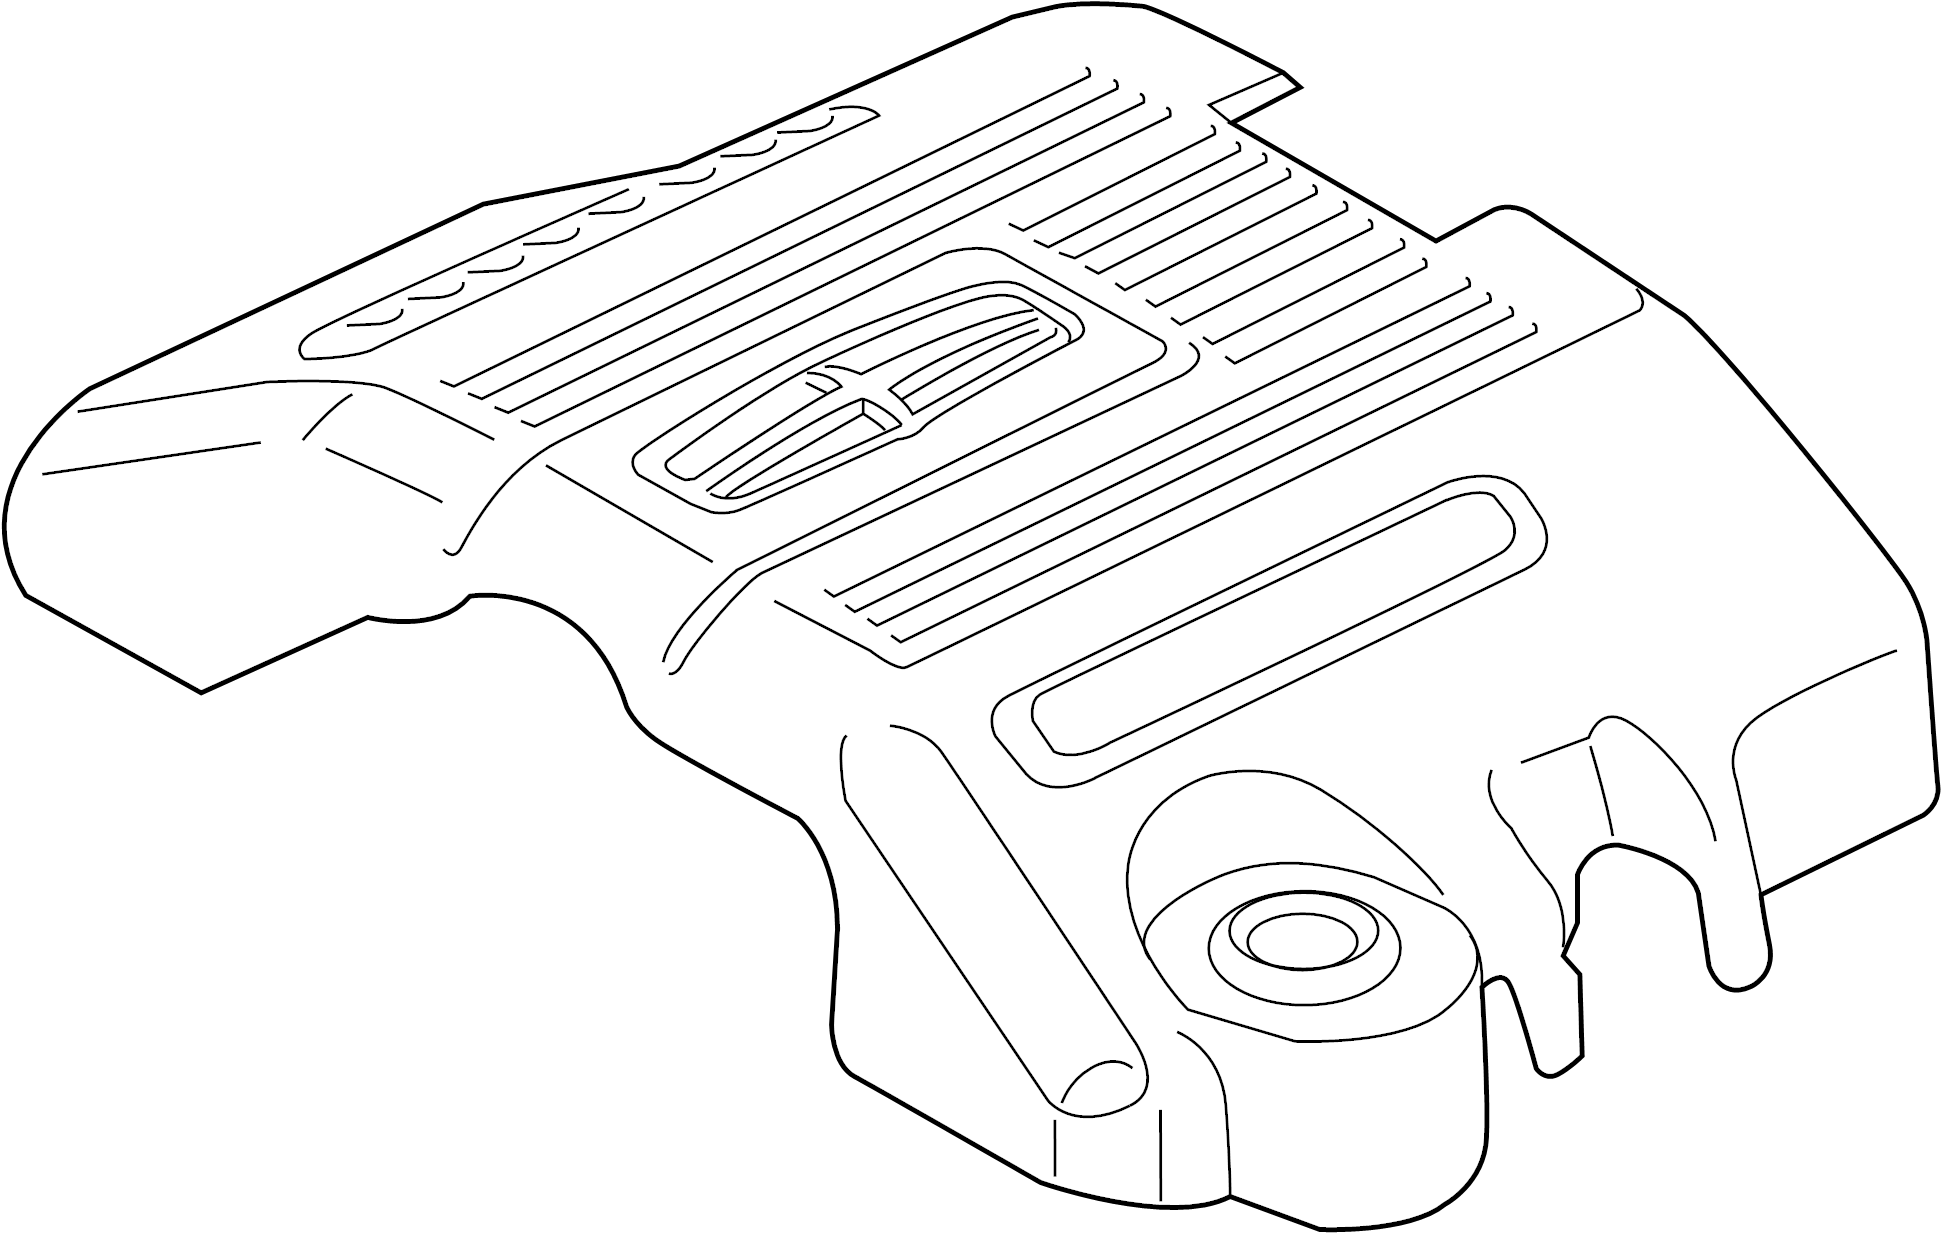 Ford F-150 Engine Cover. 3.5 LITER. 3.5 LITER W/TURBO